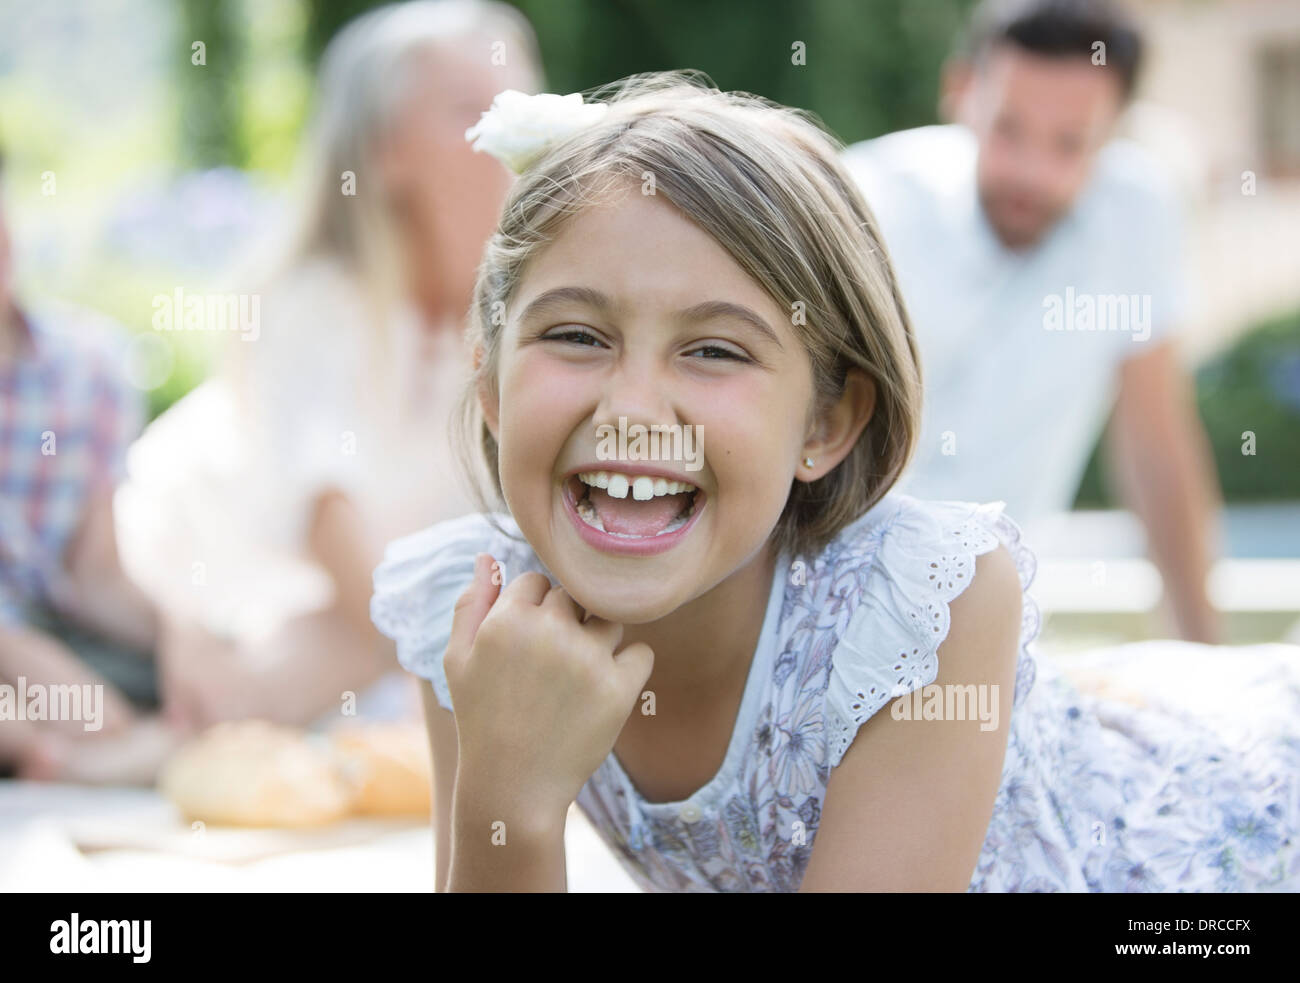 Girl laughing outdoors - Stock Image